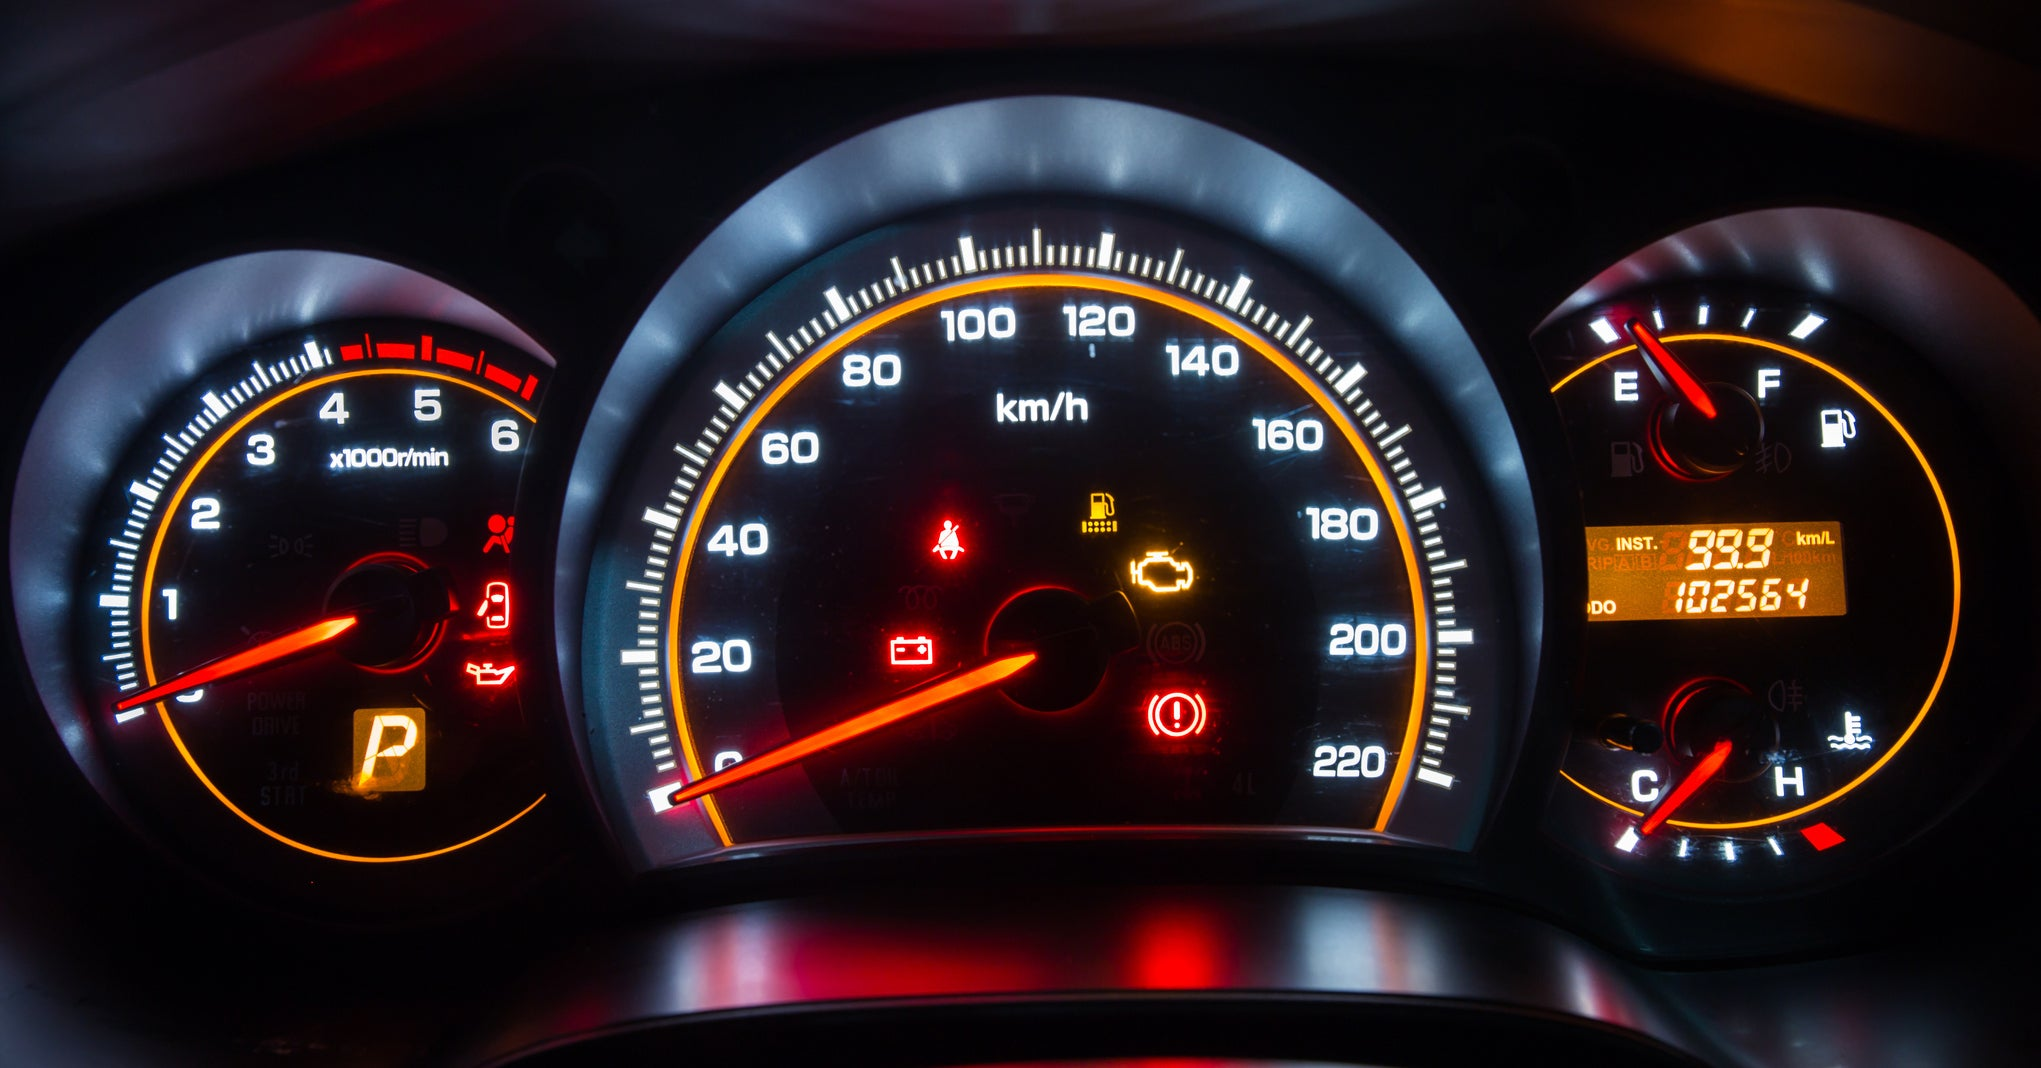 Bmw Dashboard Warning Lights >> Can You Guess What These Common Car Dashboard Symbols Really Mean?